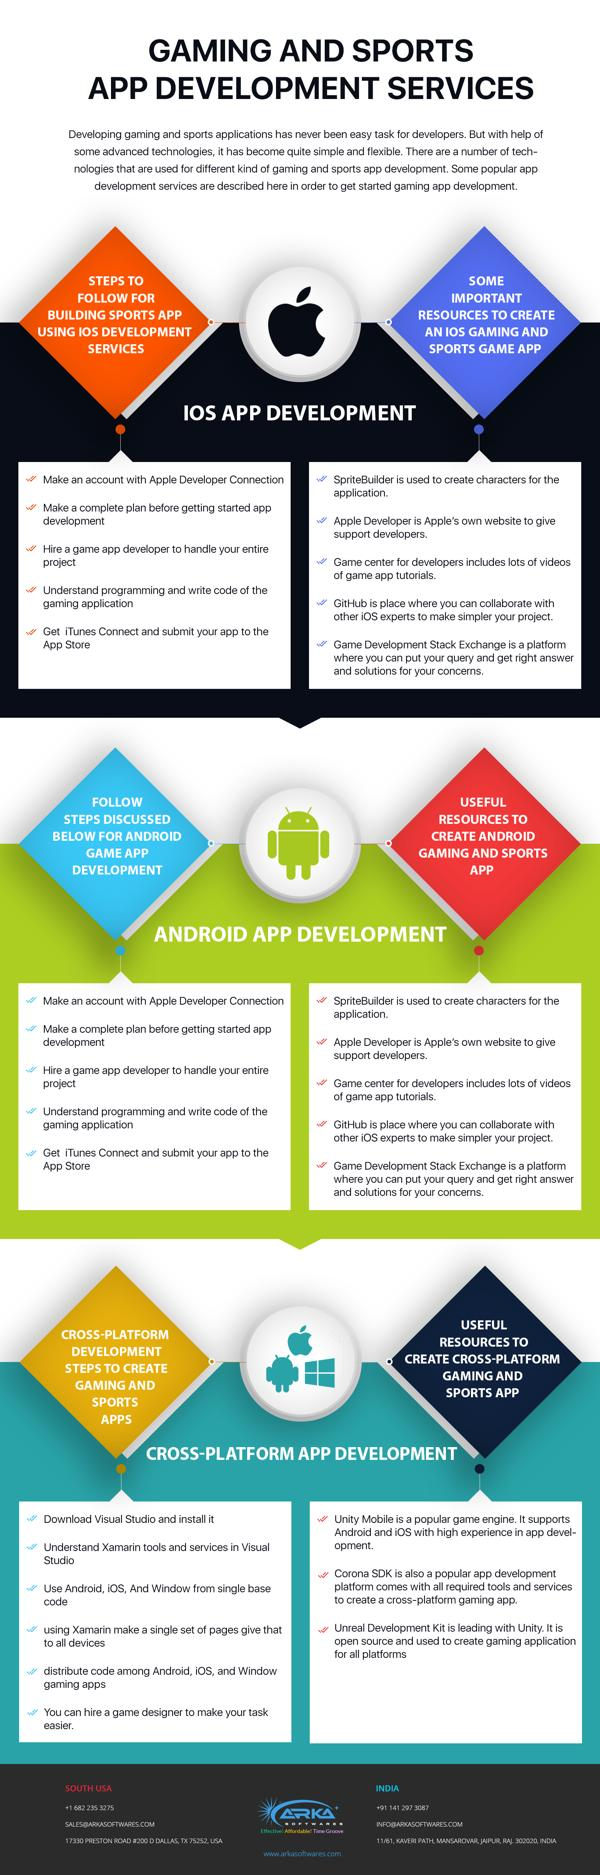 Gaming and sports app development services 1